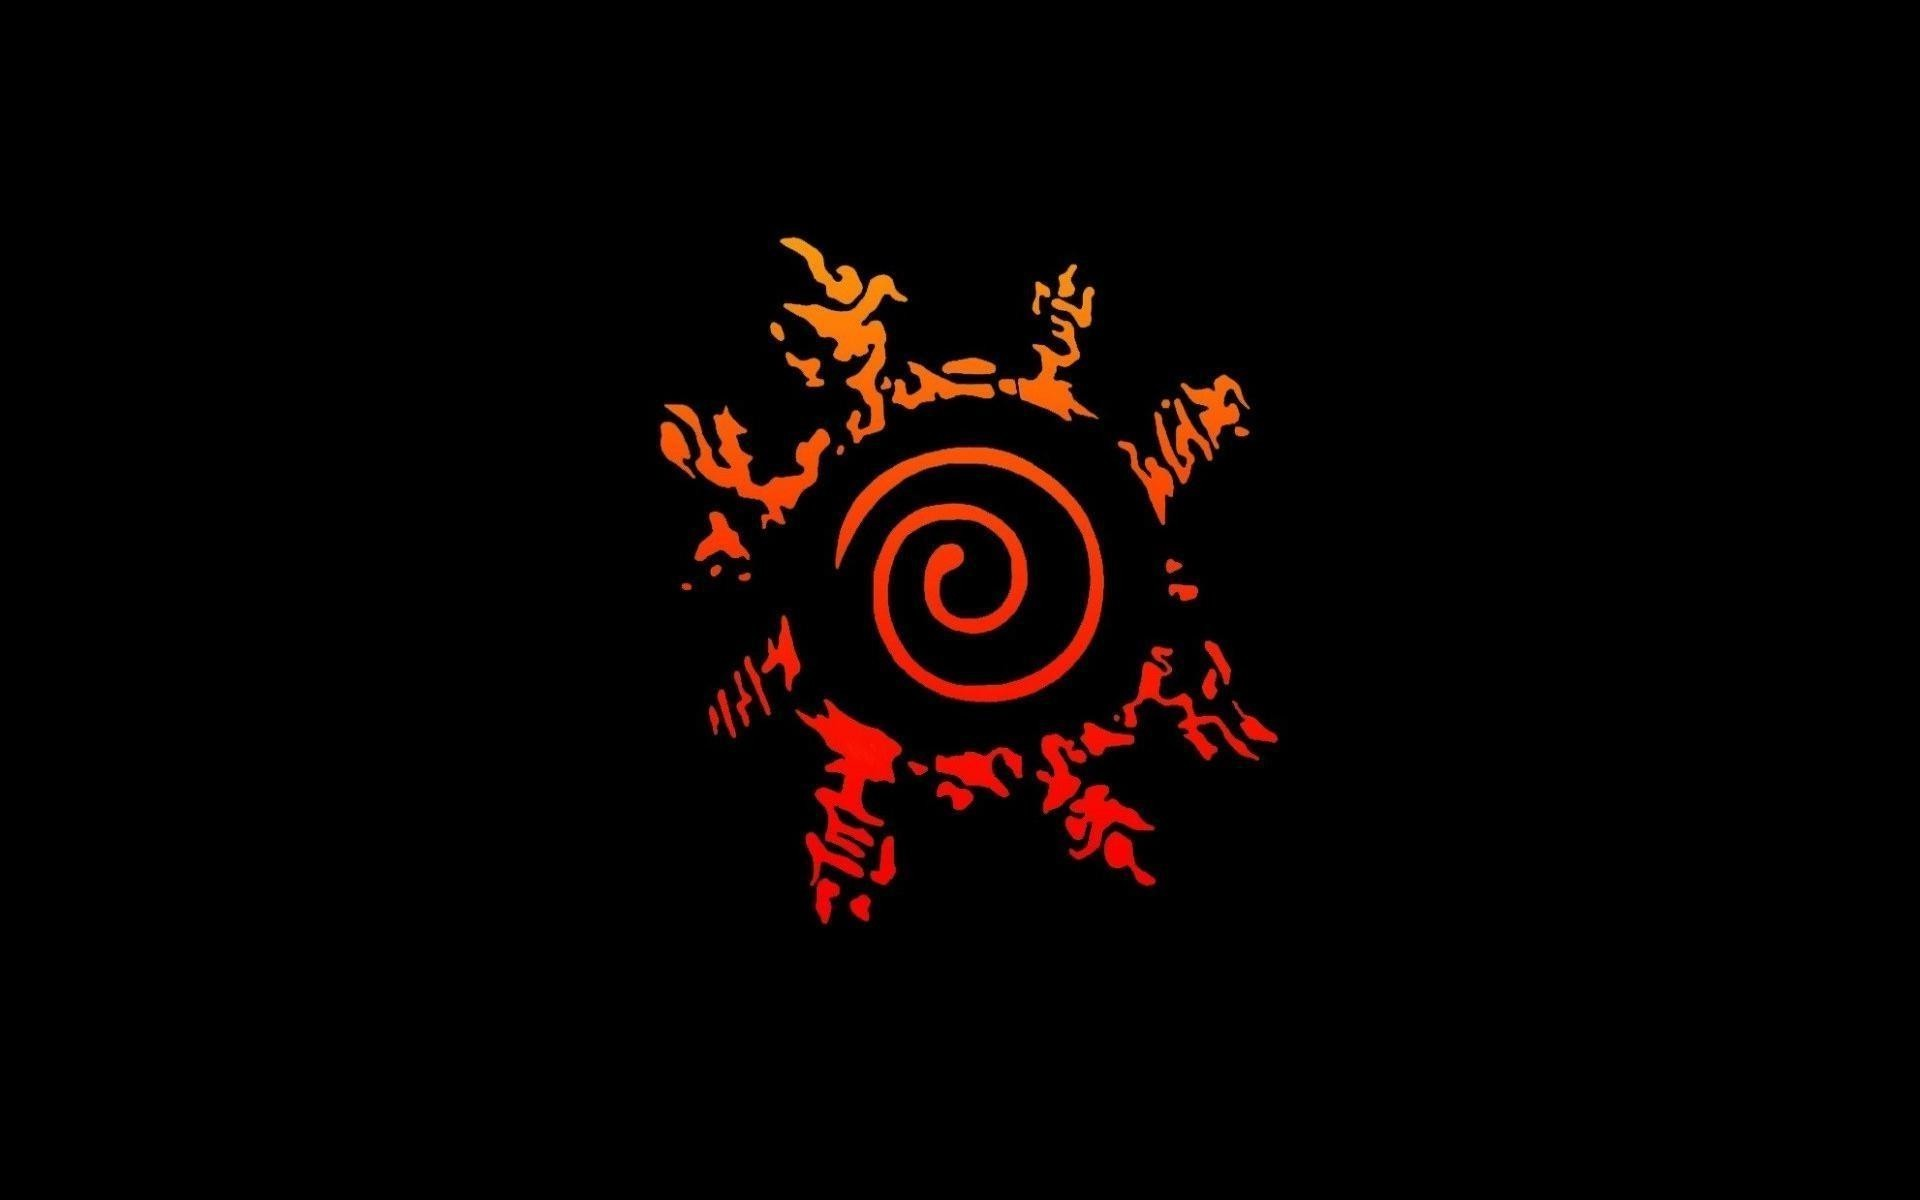 Uchiha Symbol Wallpaper the best 59+ images in 2018